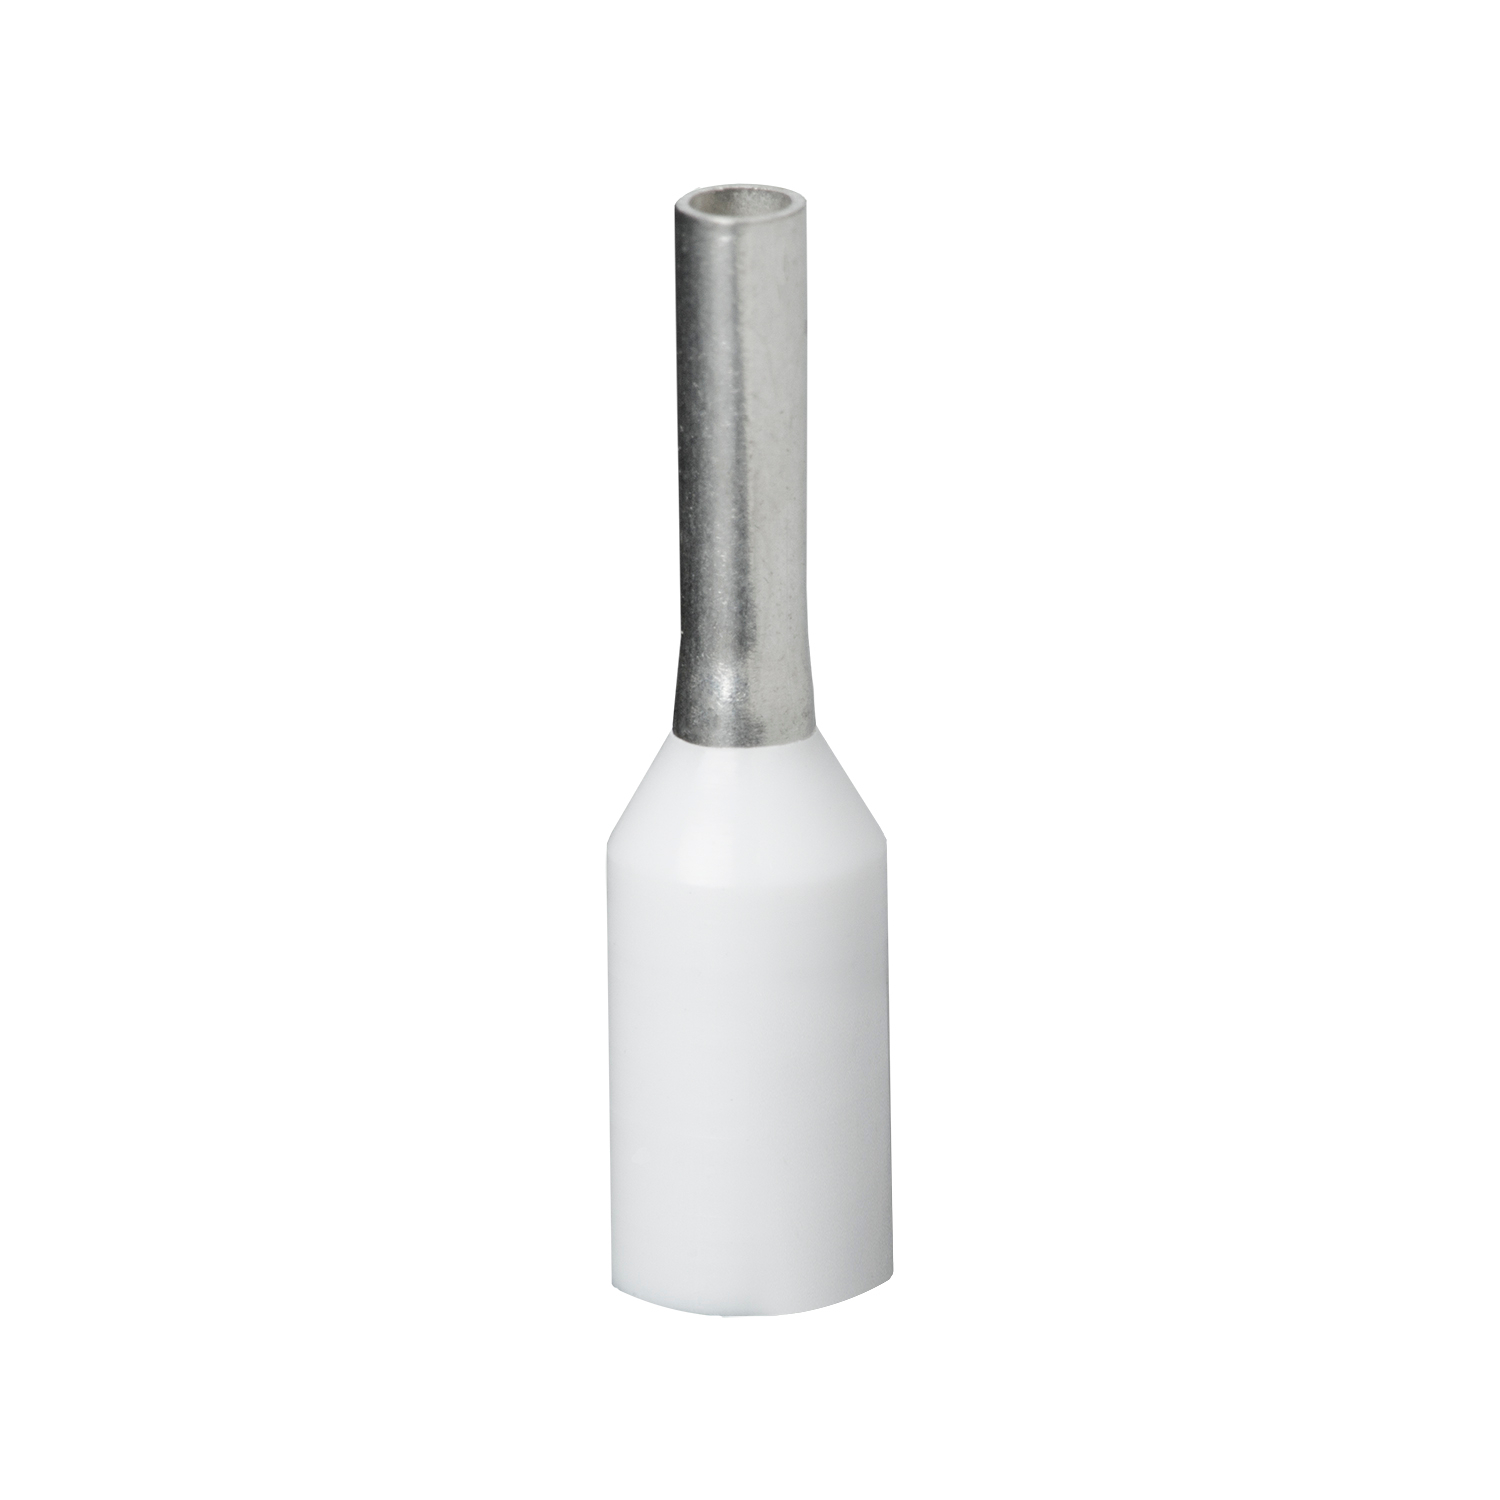 T&B F2021 INSULATED FERRULE